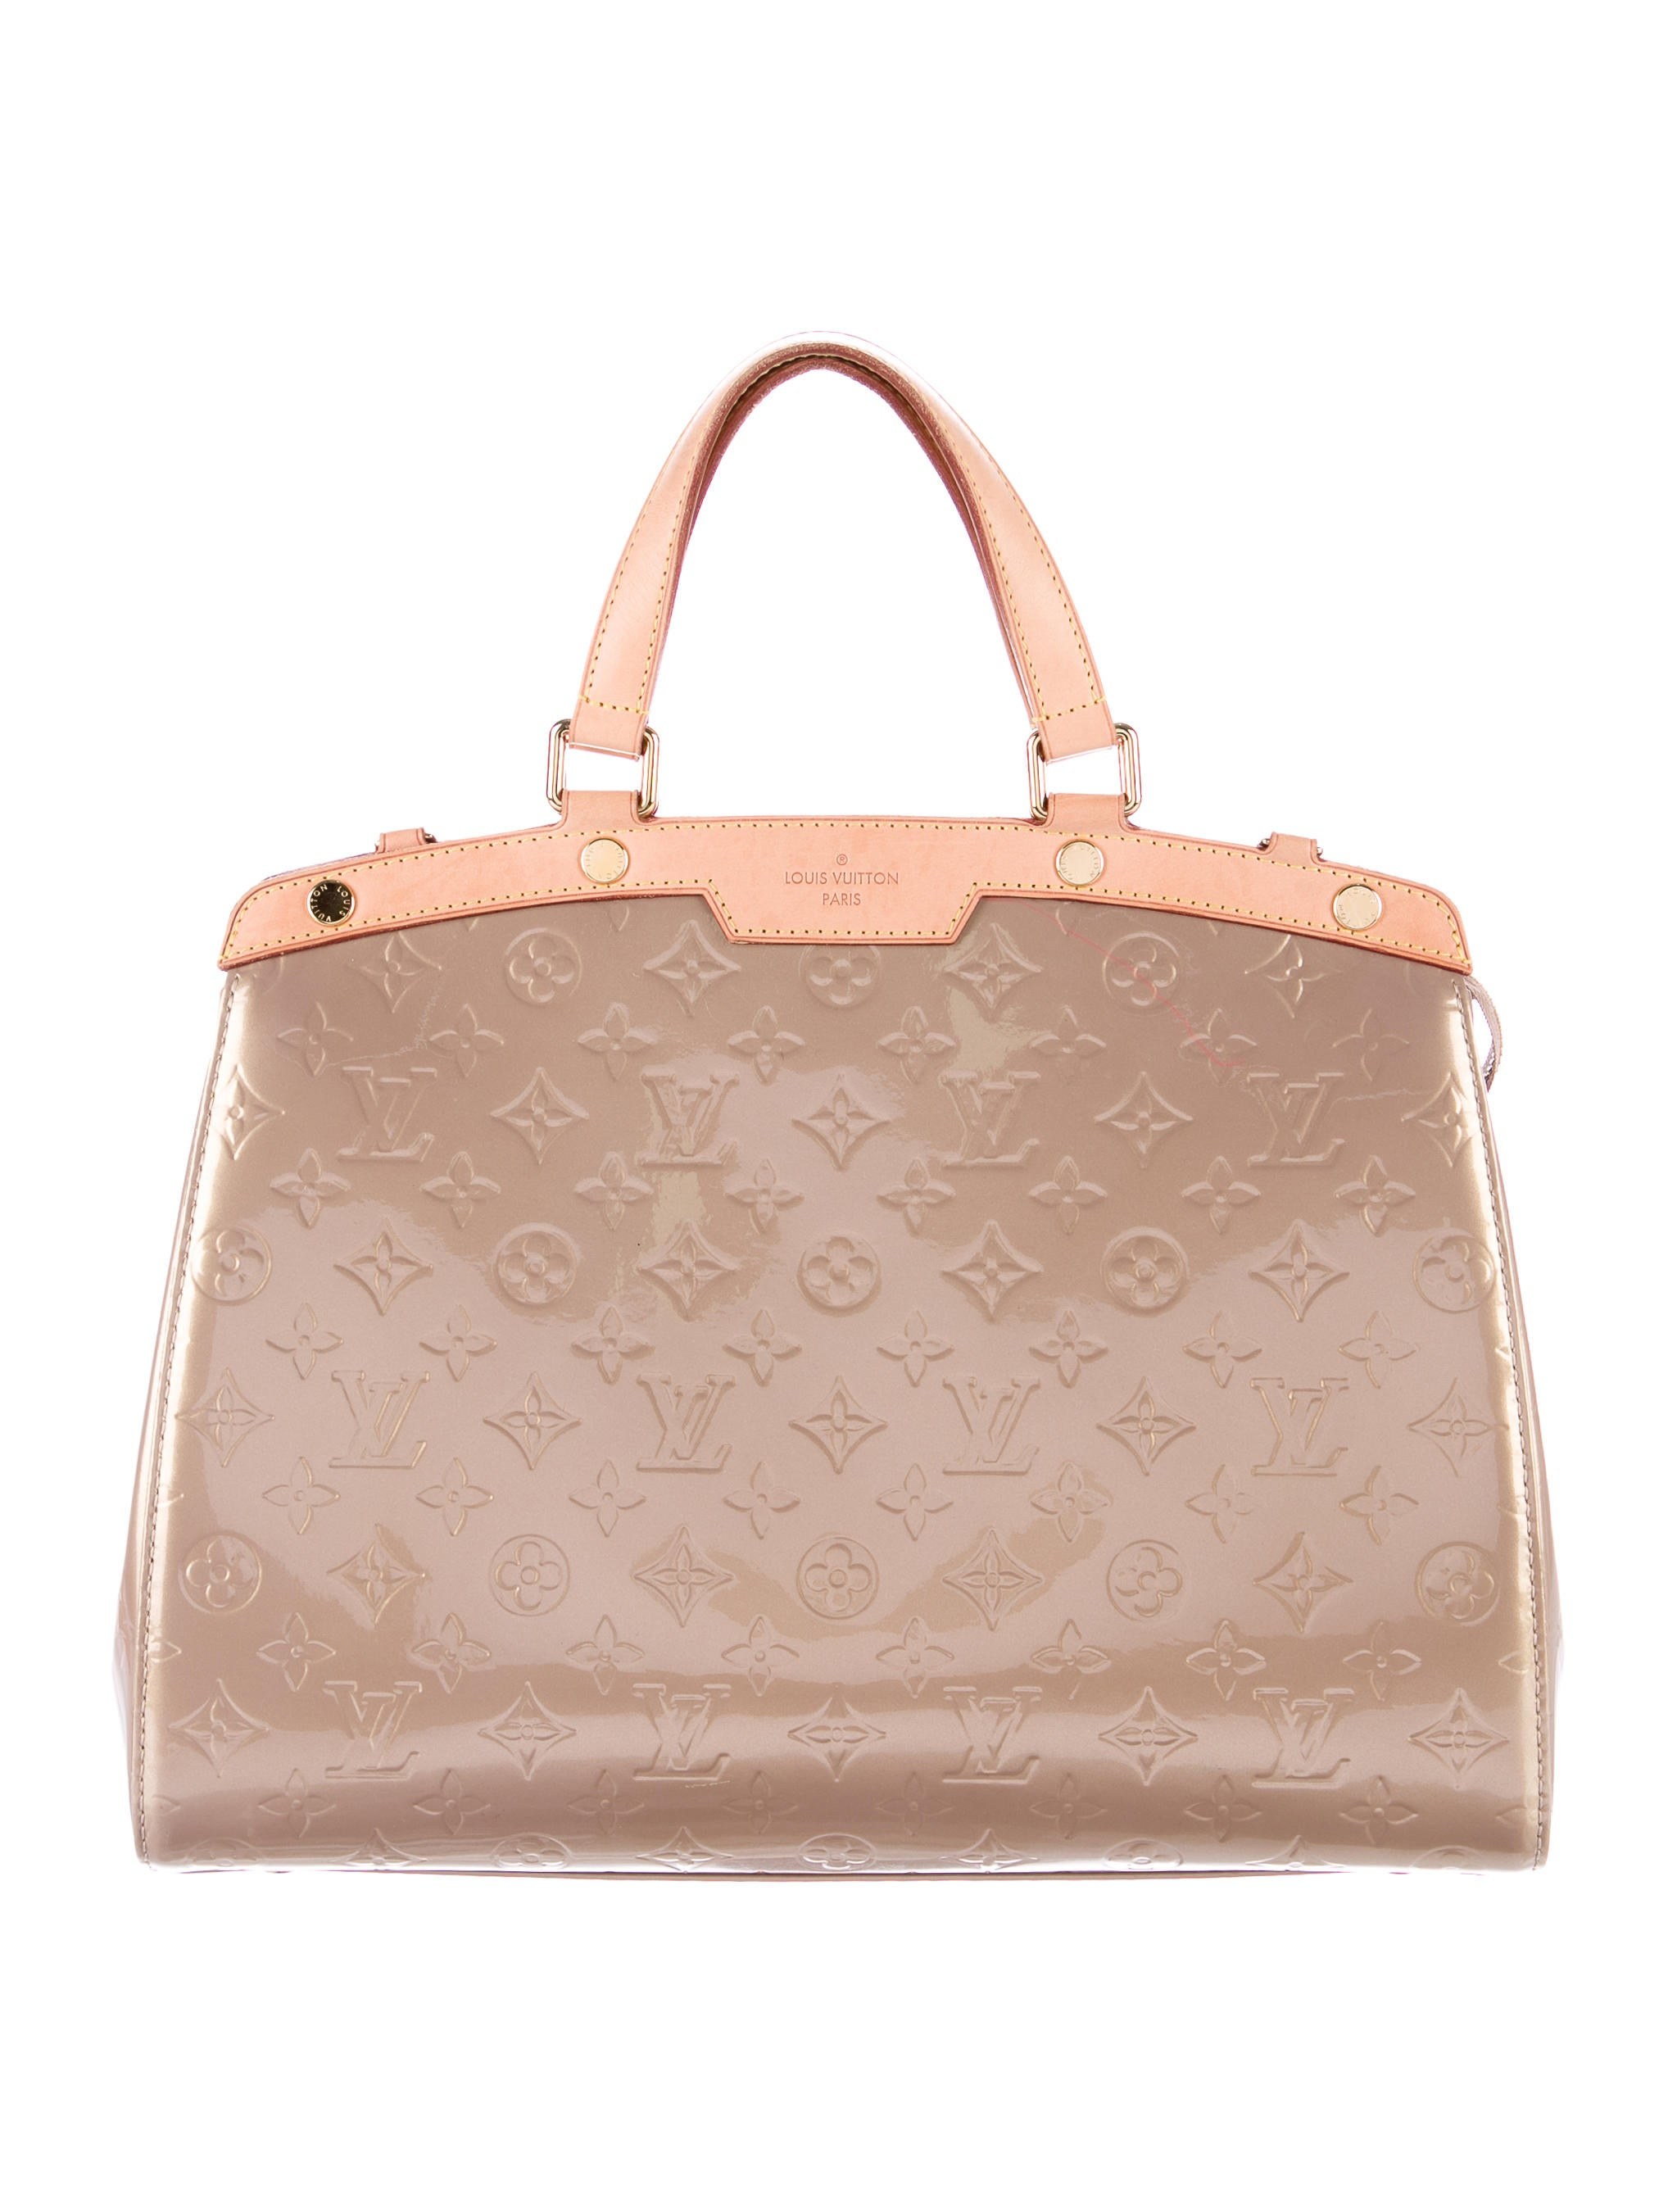 Louis Vuitton Vernis Brea Gm Handbags Lou124922 The